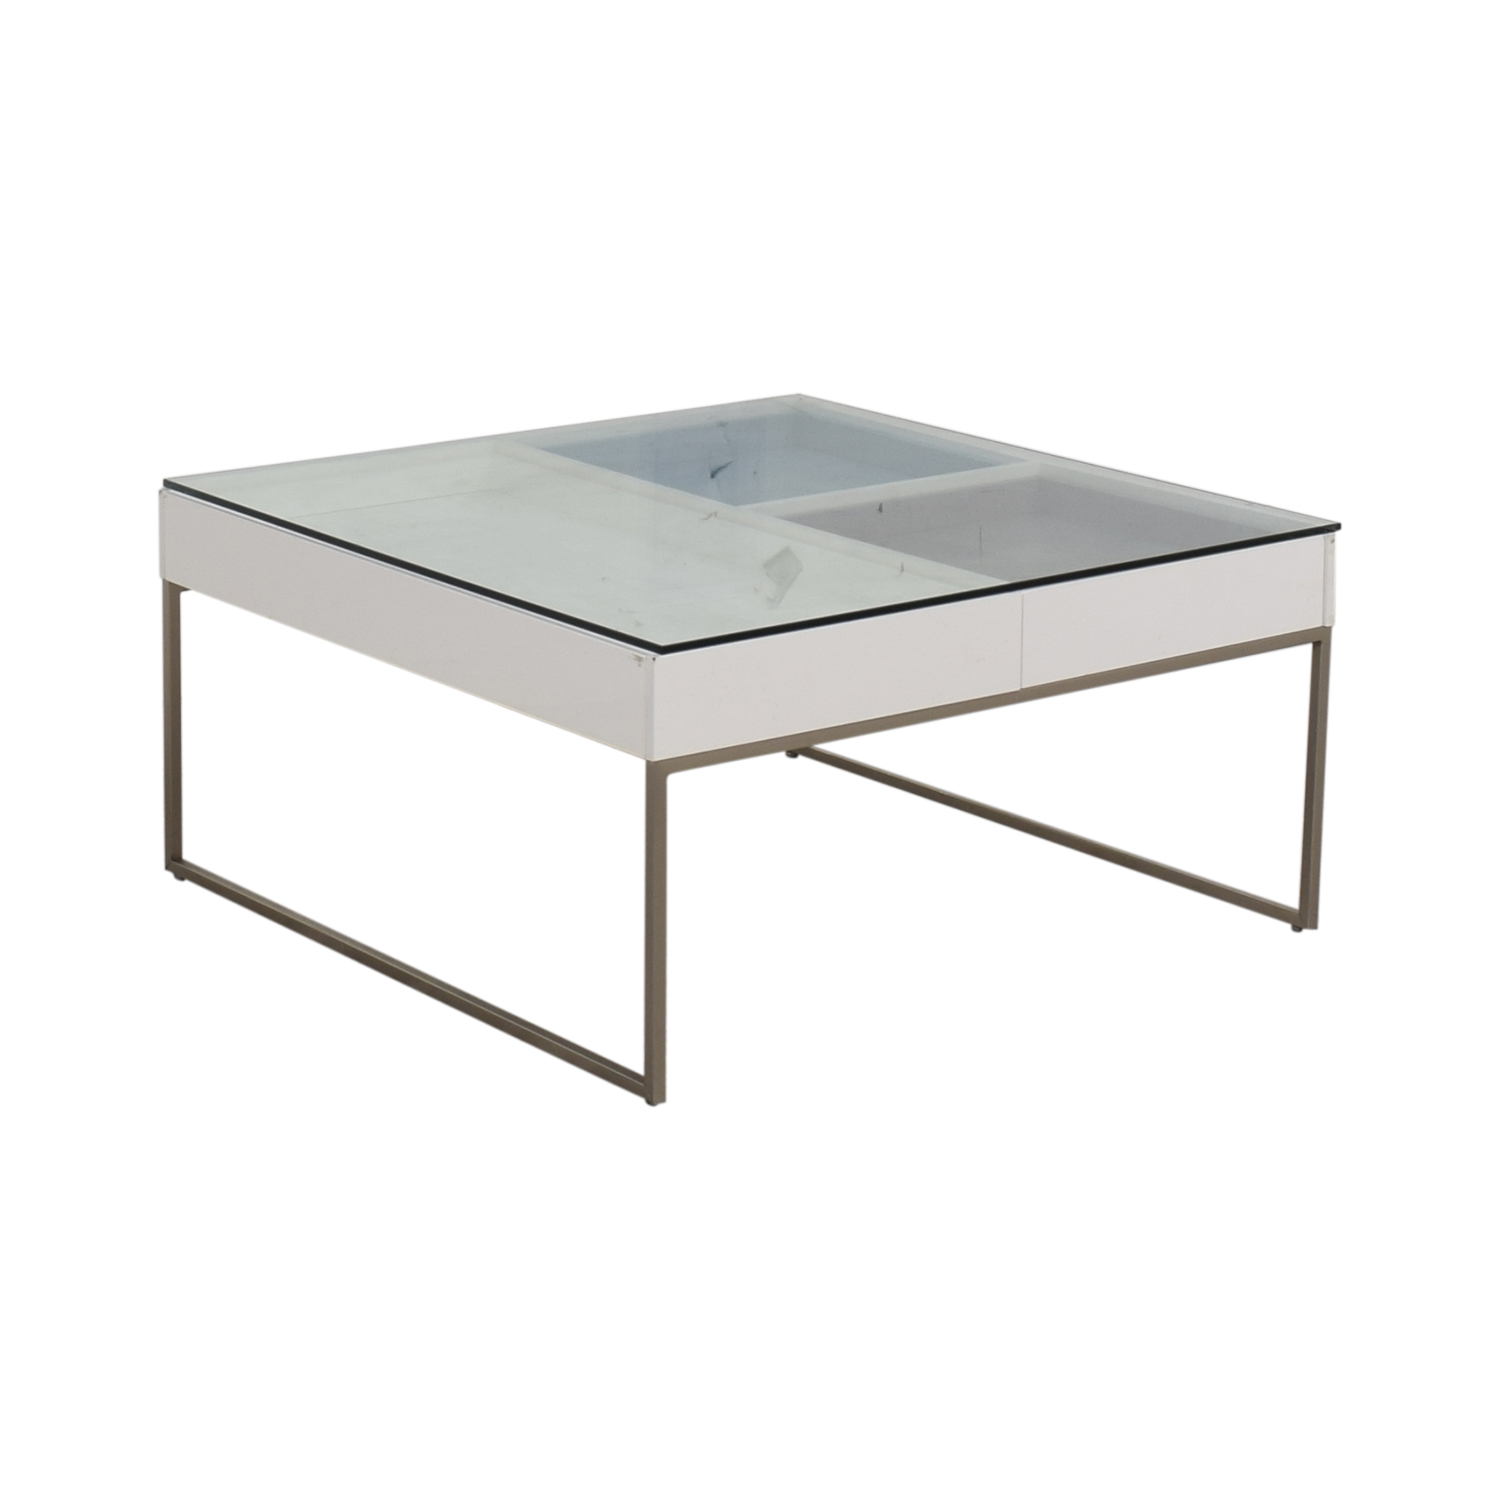 BoConcept BoConcept Chiva Glass and White Lacquered Coffee Table dimensions